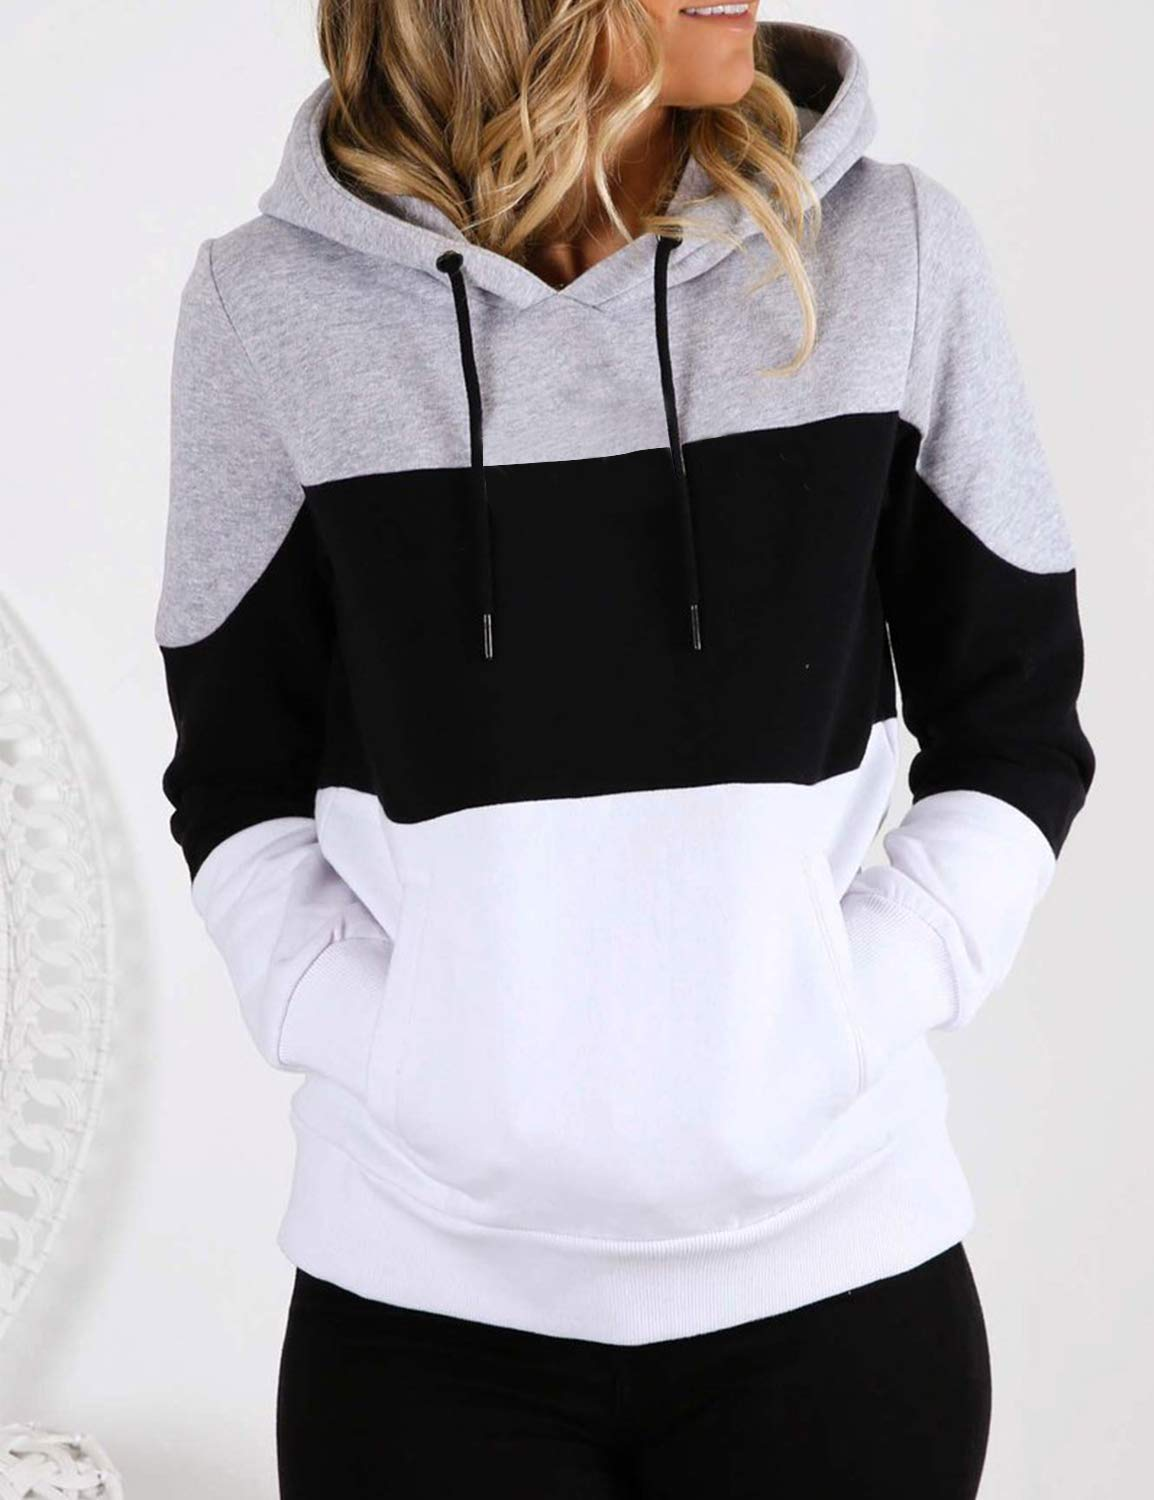 Blooming Jelly Womens Pullover Hoodie Long Sleeve Colorblock Terry Hooded Sweatshirt Top with Pocket(S,Black)